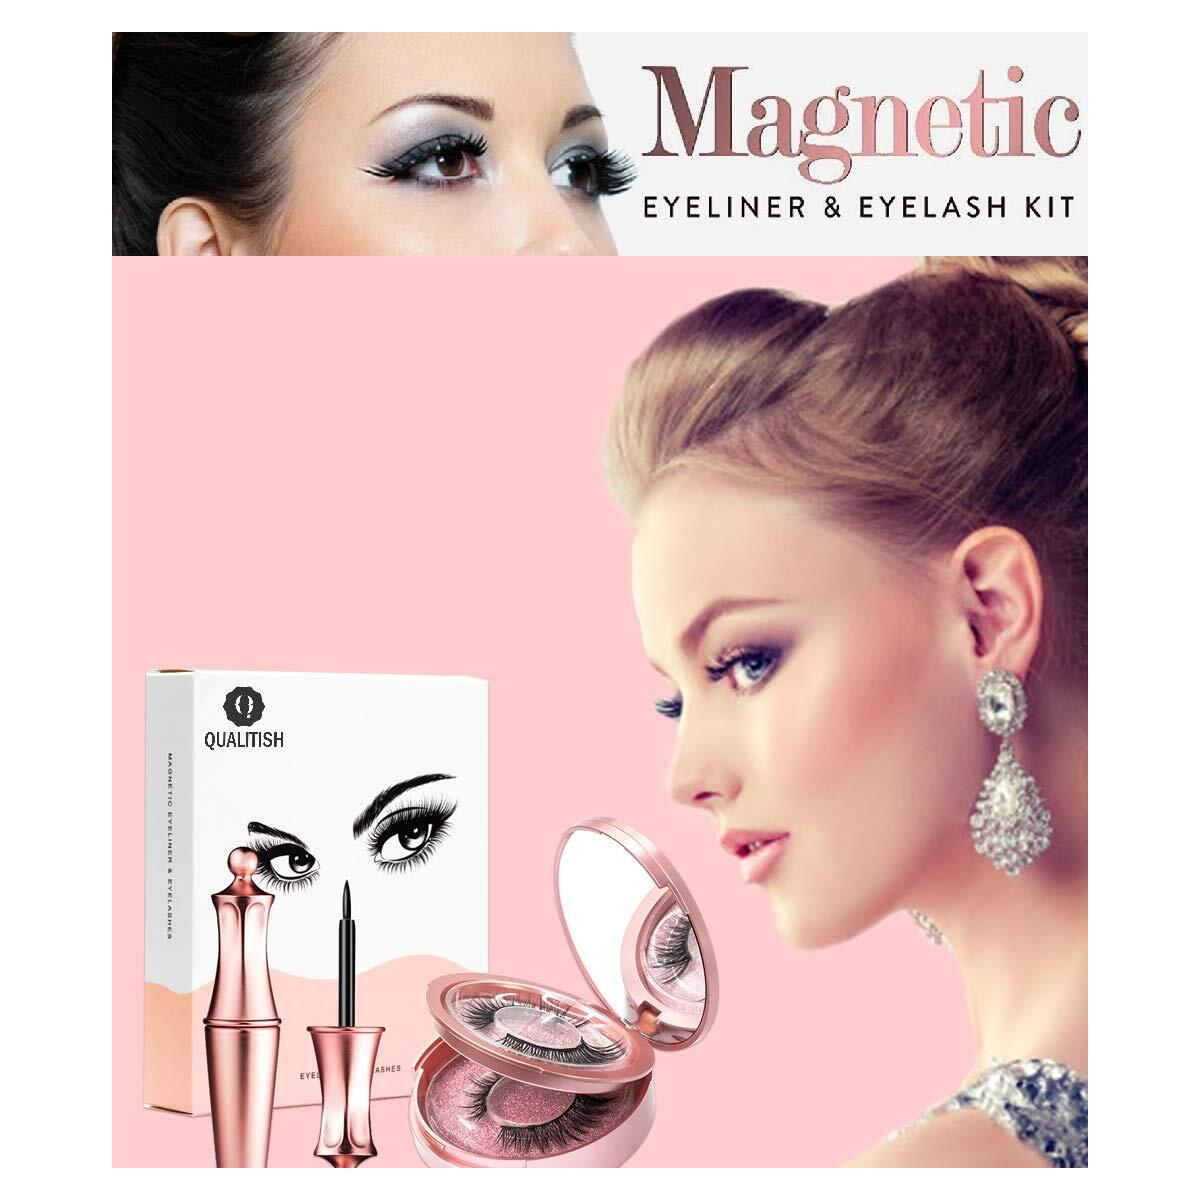 2 Pairs Magnetic Eyeliner and Lashes -Reusable Magnetic Eyelashes & Magnetic Eyeliner with Tweezers Kit, Magnetic Lashes No Glue Needed